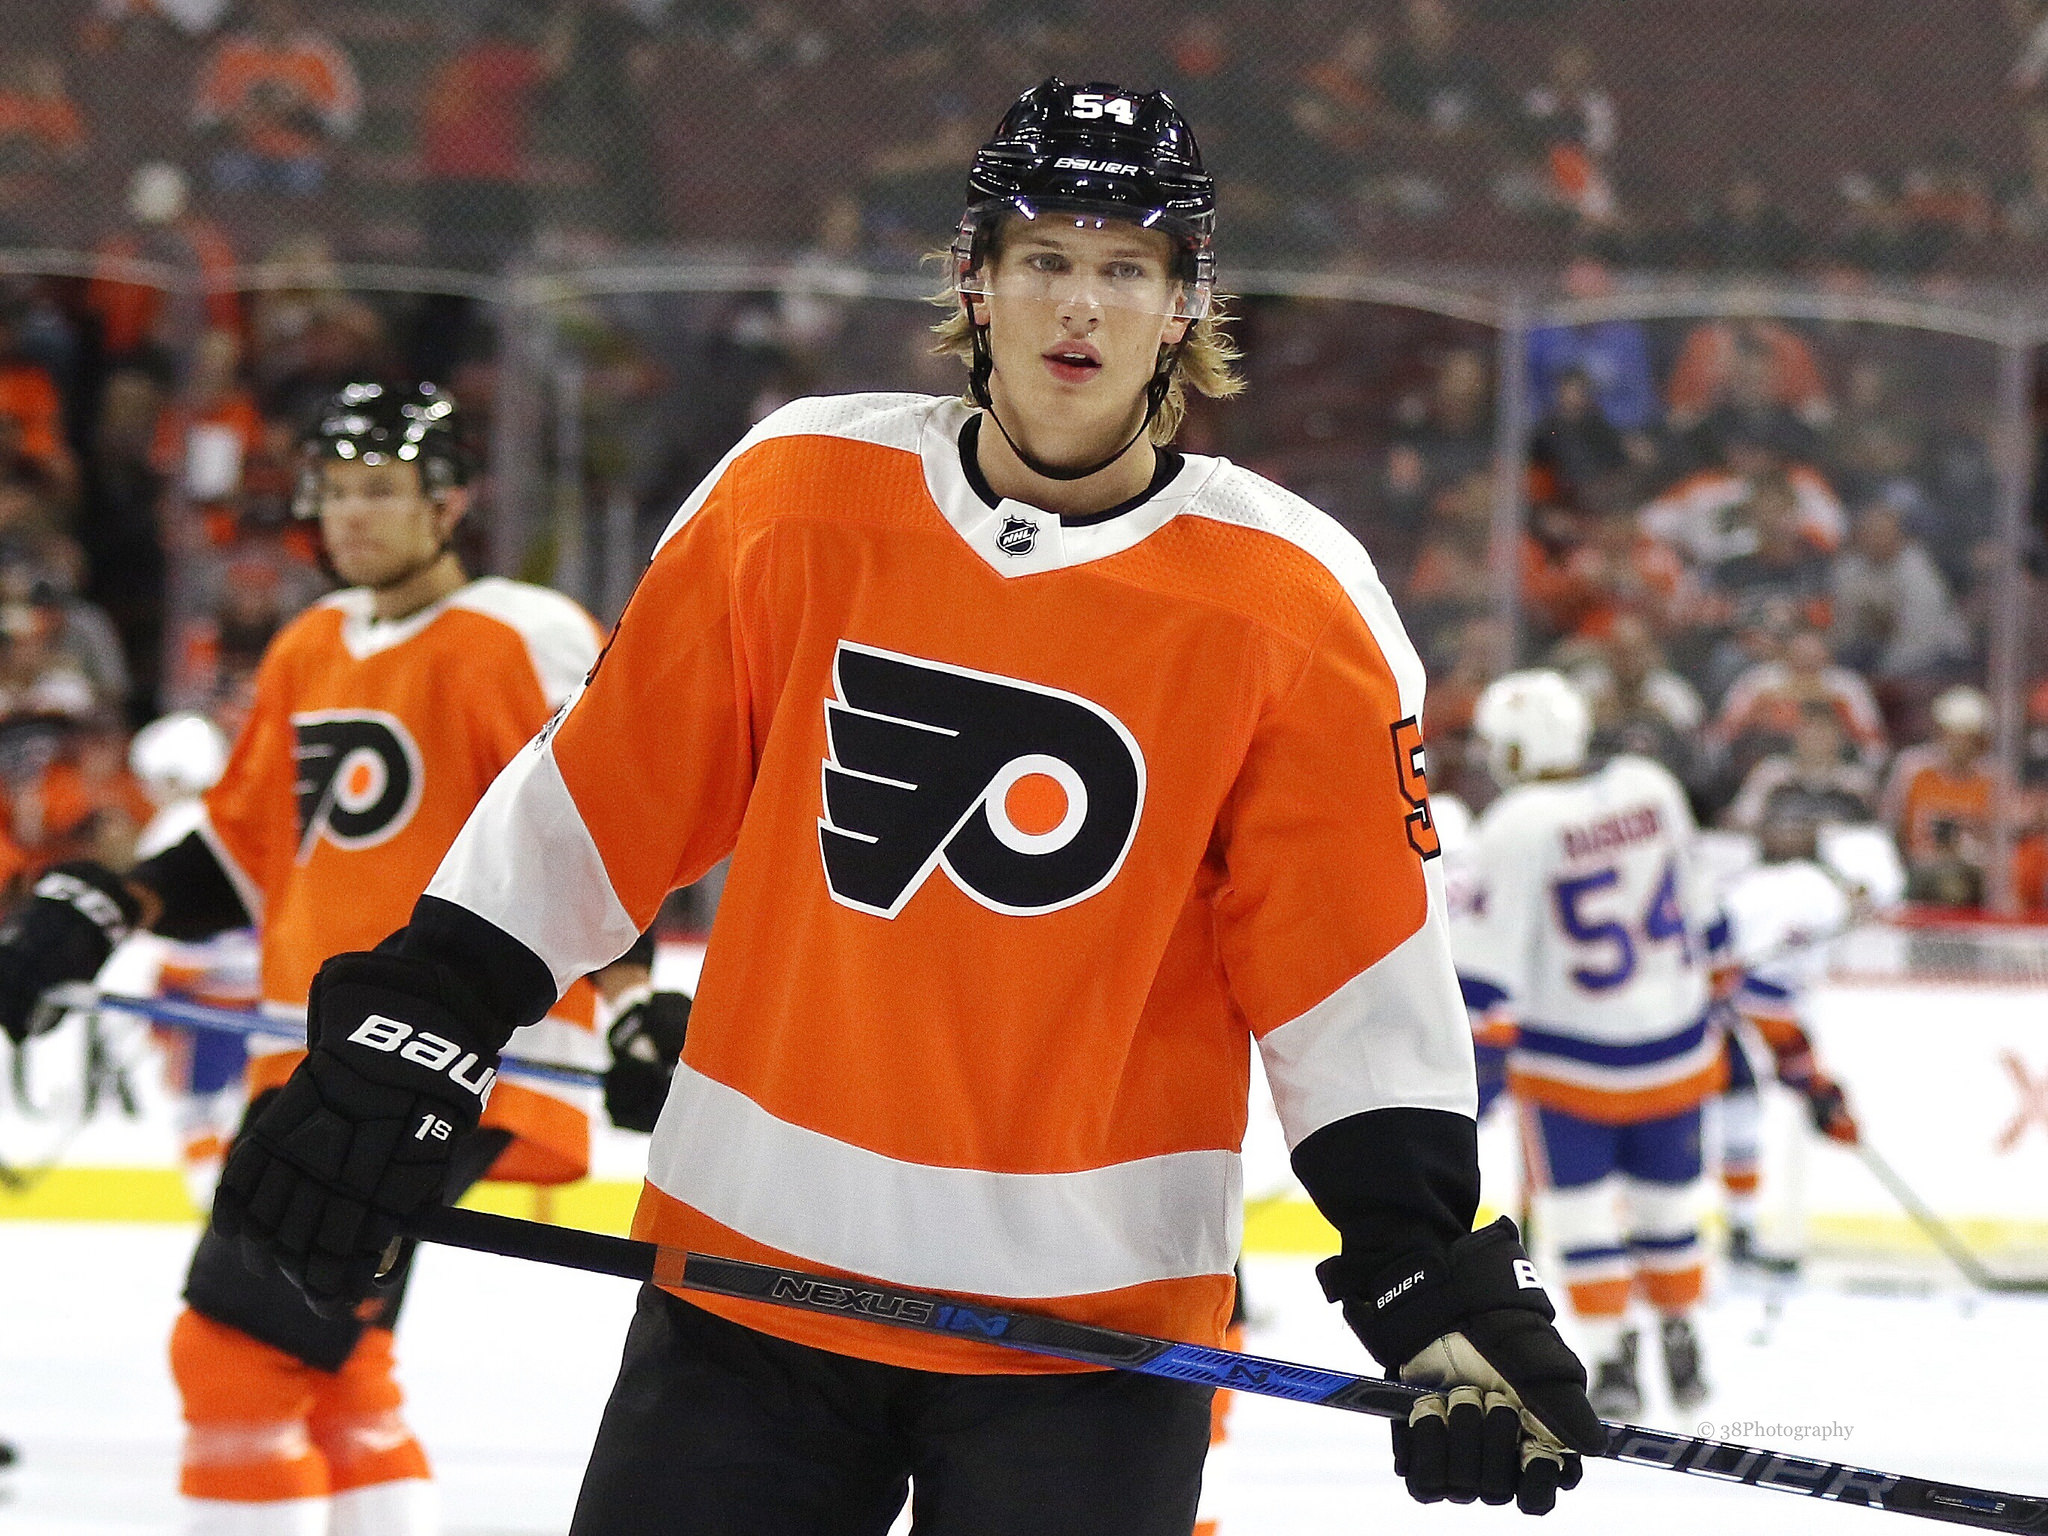 Leier, Ghost pace Flyers to OT preseason win at PPL Center